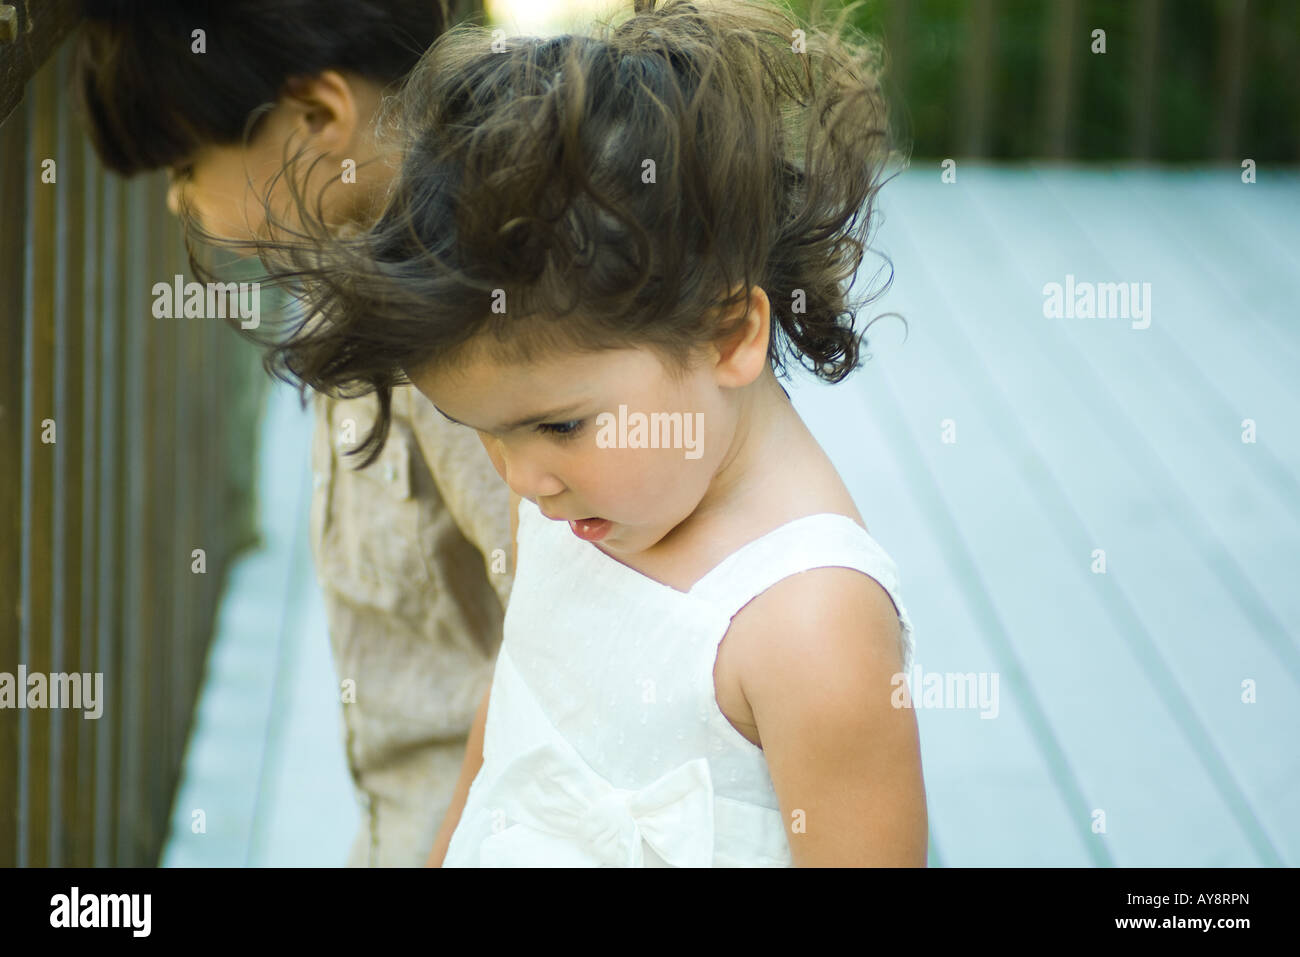 Little girl standing outdoors, looking down, hair tousled by wind, boy standing in background - Stock Image